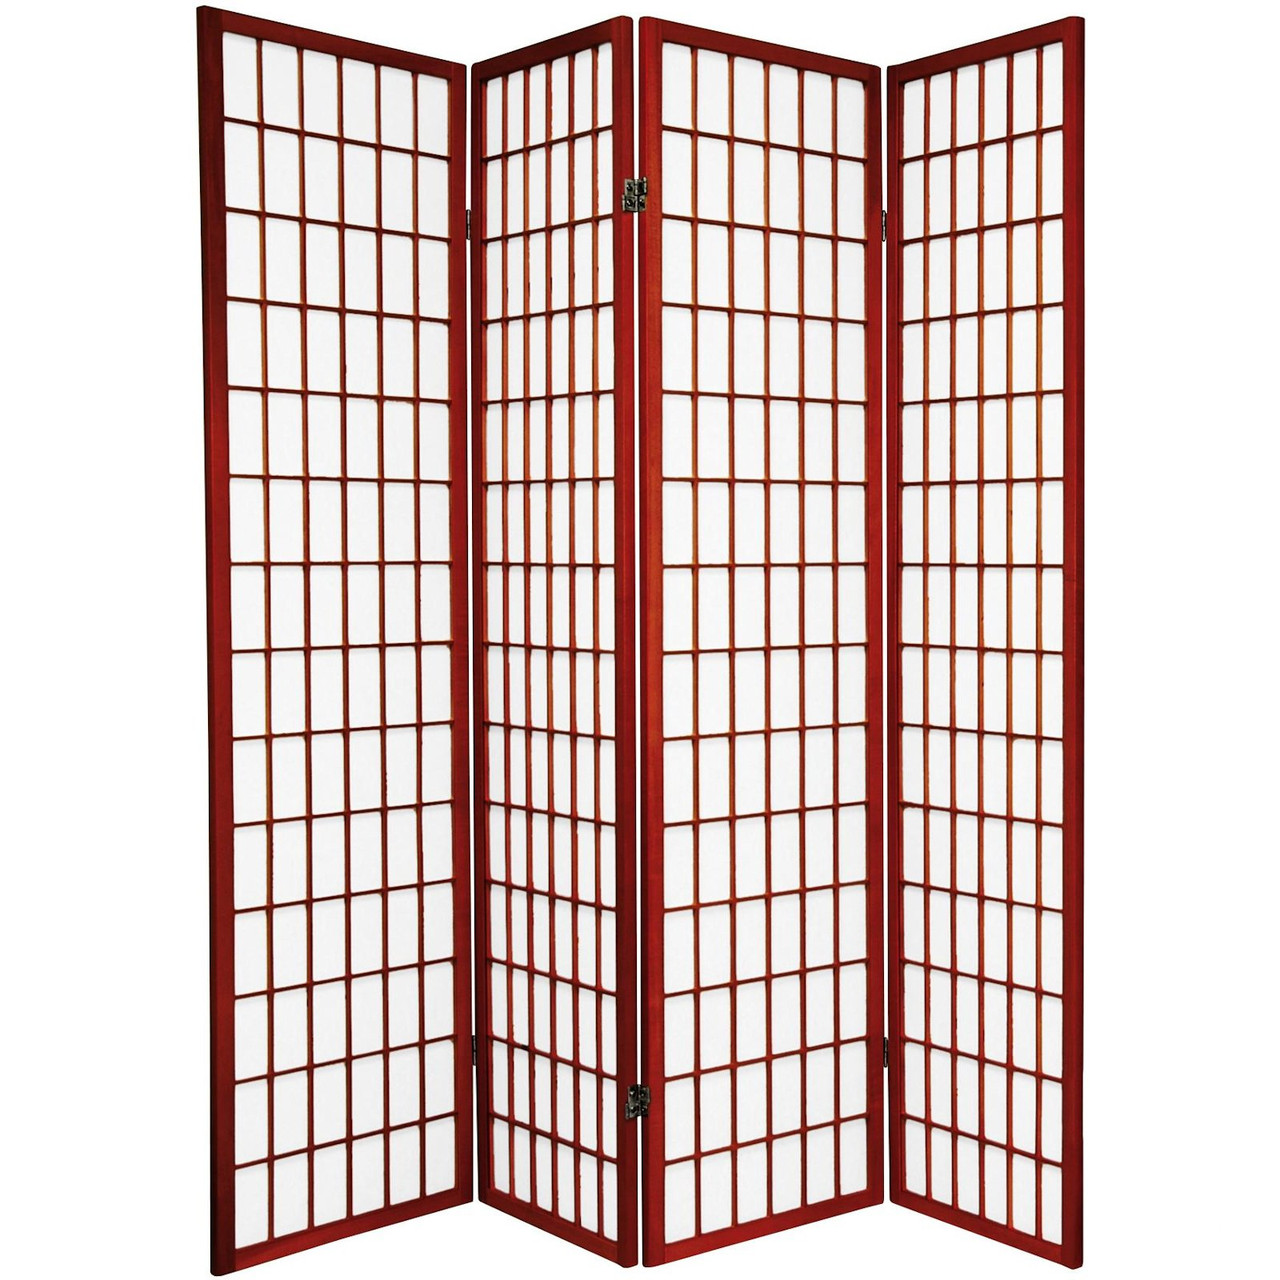 4 Panel Room Dividers Shoji Design Black, White, Cherry, Espresso, or Natural Color